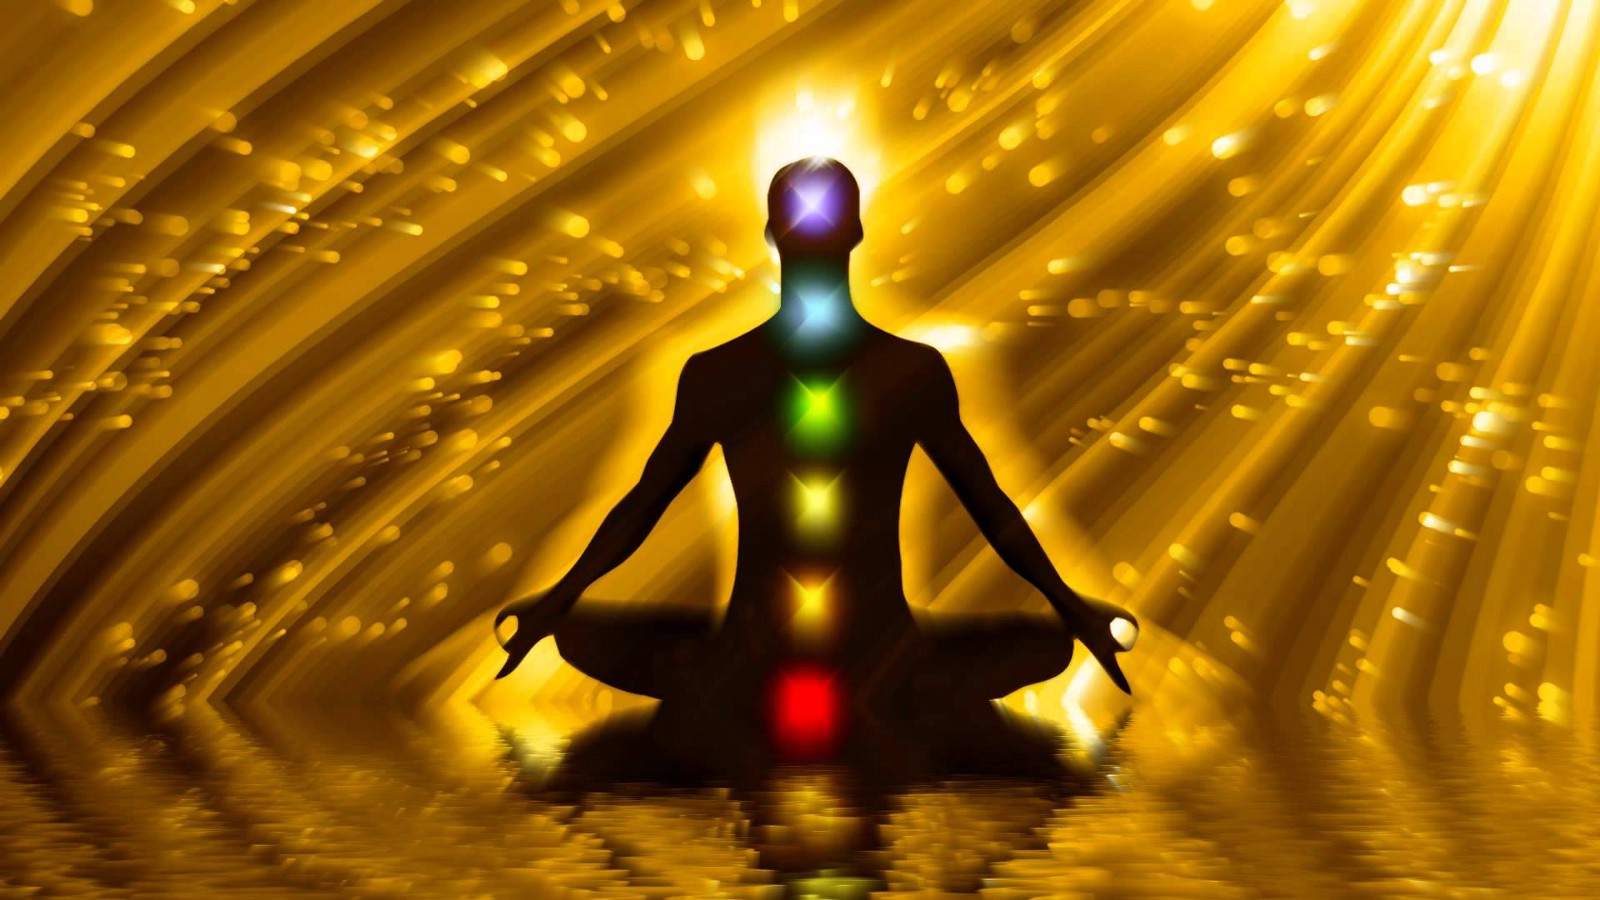 1*0Qt1BfmIaPyEWwmlbOtOJQ essential chakras for energy and vision the mainstream doesn't tell you